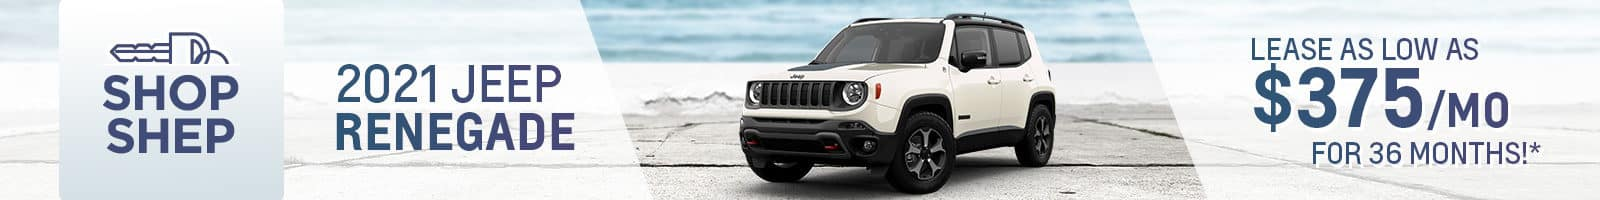 Best lease deal on the all-new 2021 Jeep Renegade near Fort Wayne IN